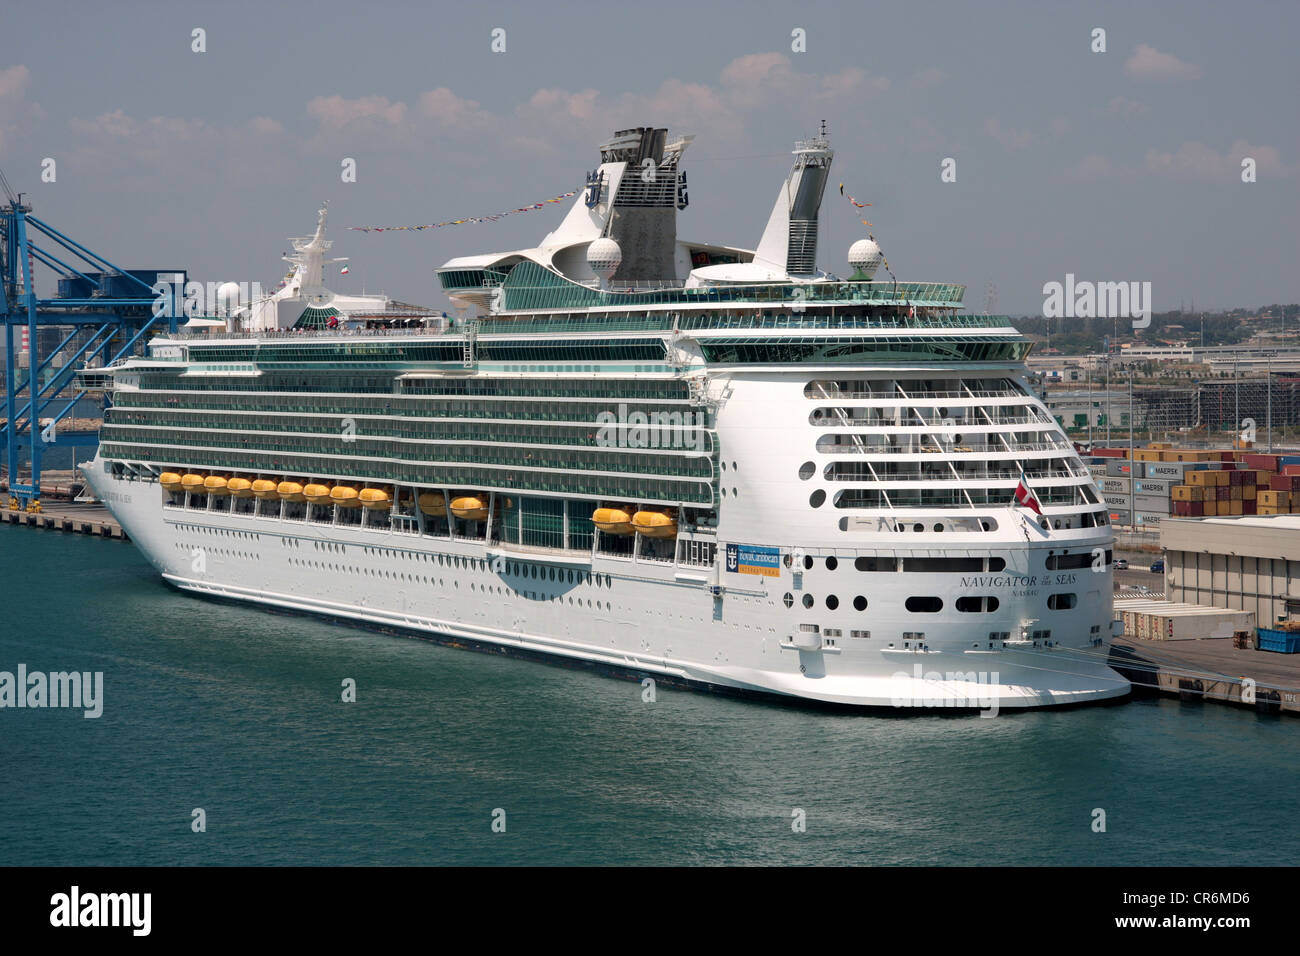 Cruise ship, Navigator of the Seas, berthed at Civitavecchia, Italy - Stock Image